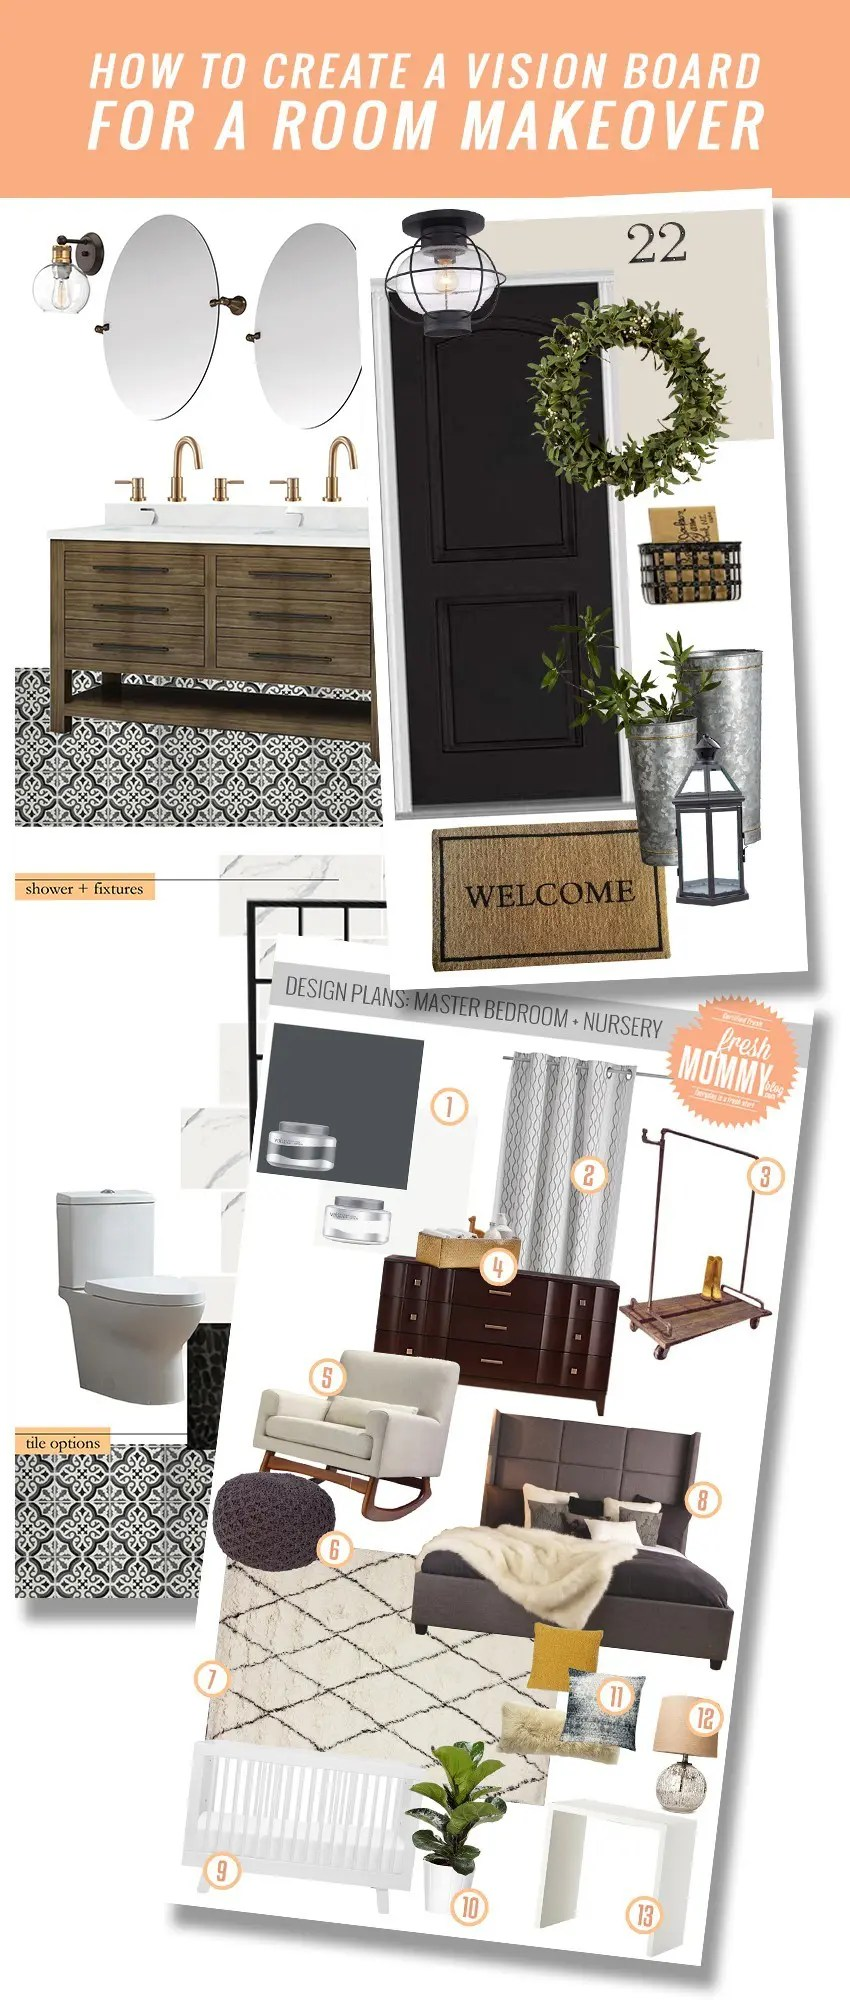 How To Create A Mood Board For A Room Makeover Fresh Mommy Blog